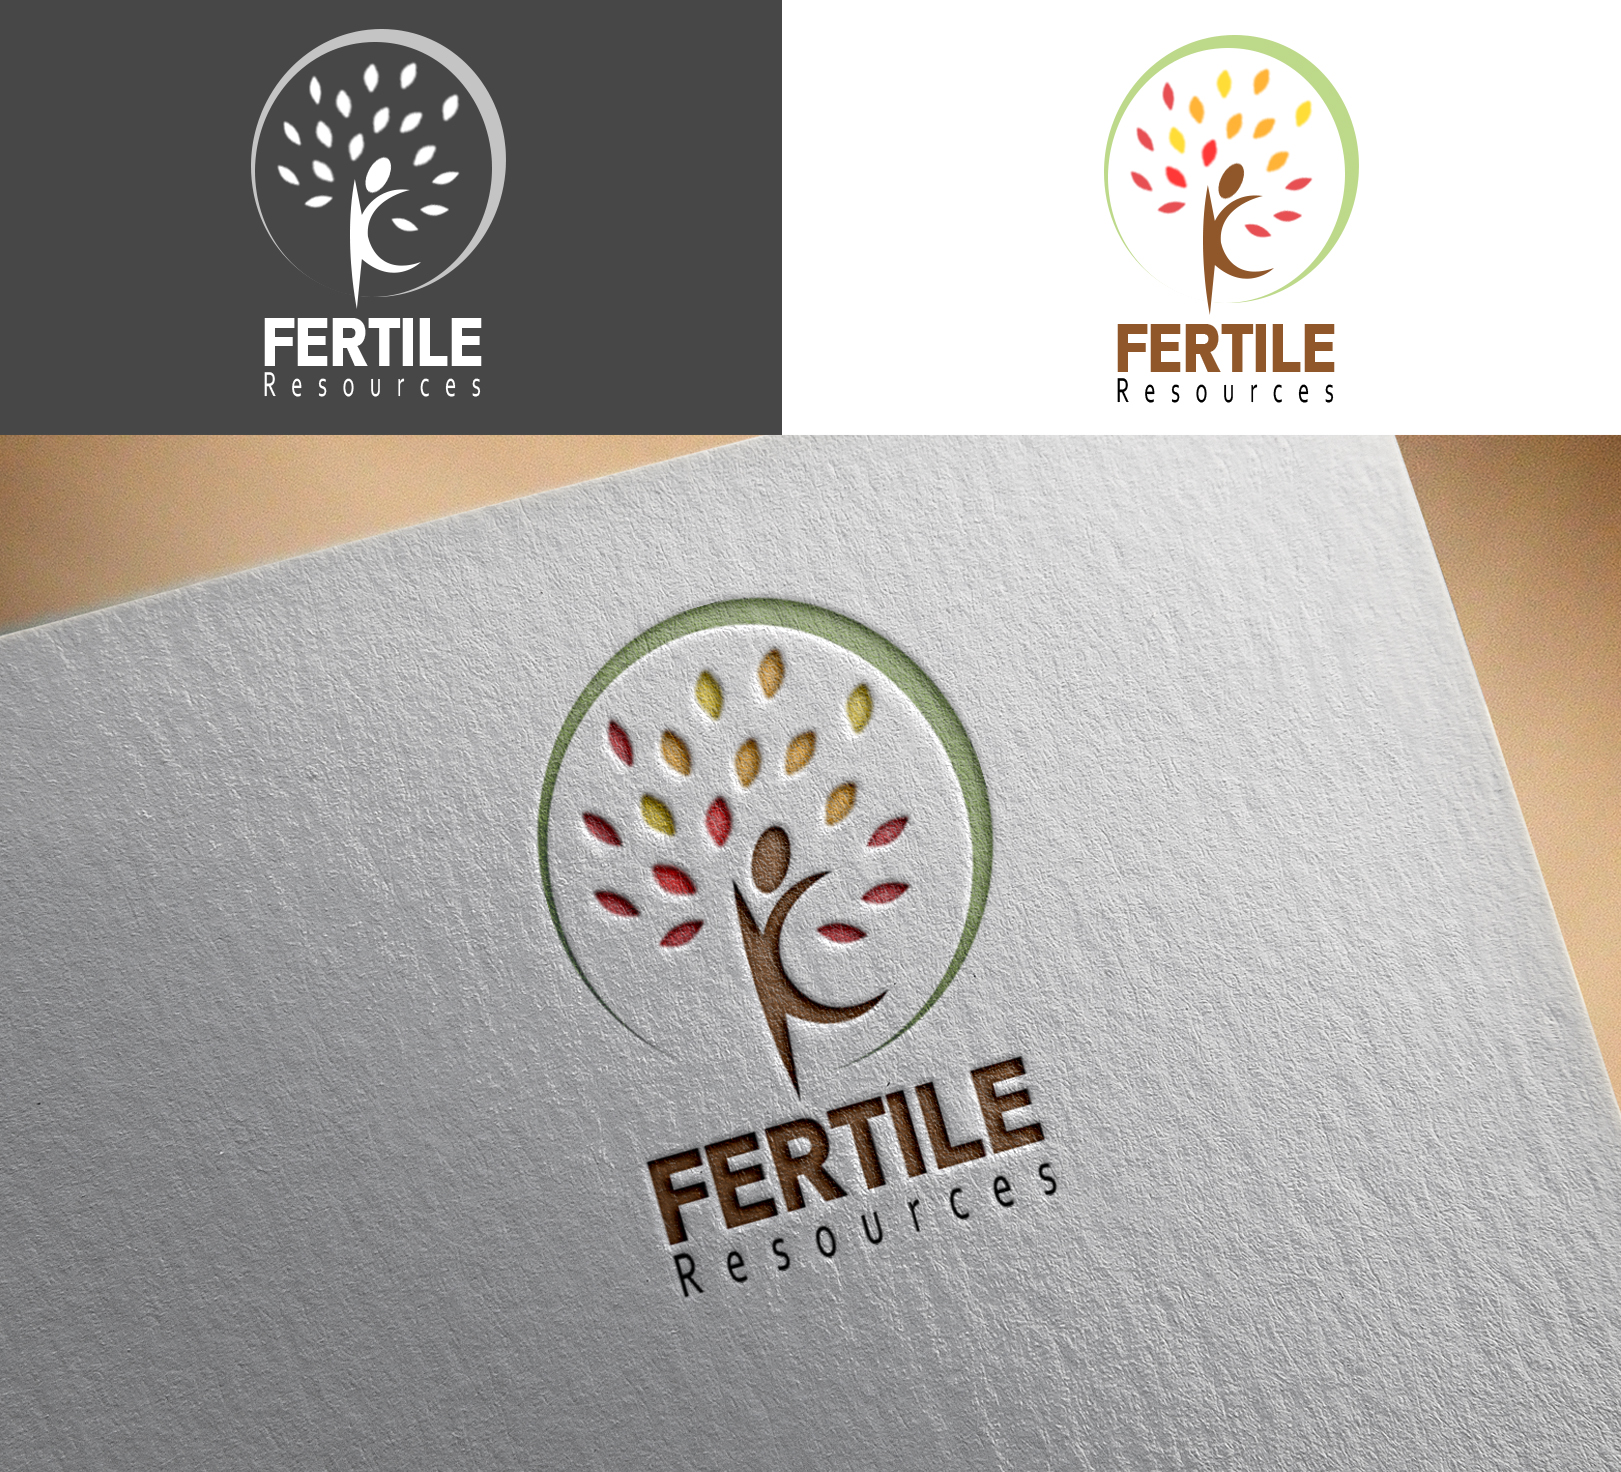 Logo Design by Sohaib Ali Khan - Entry No. 123 in the Logo Design Contest Fertile Resources, Inc. Logo Design.